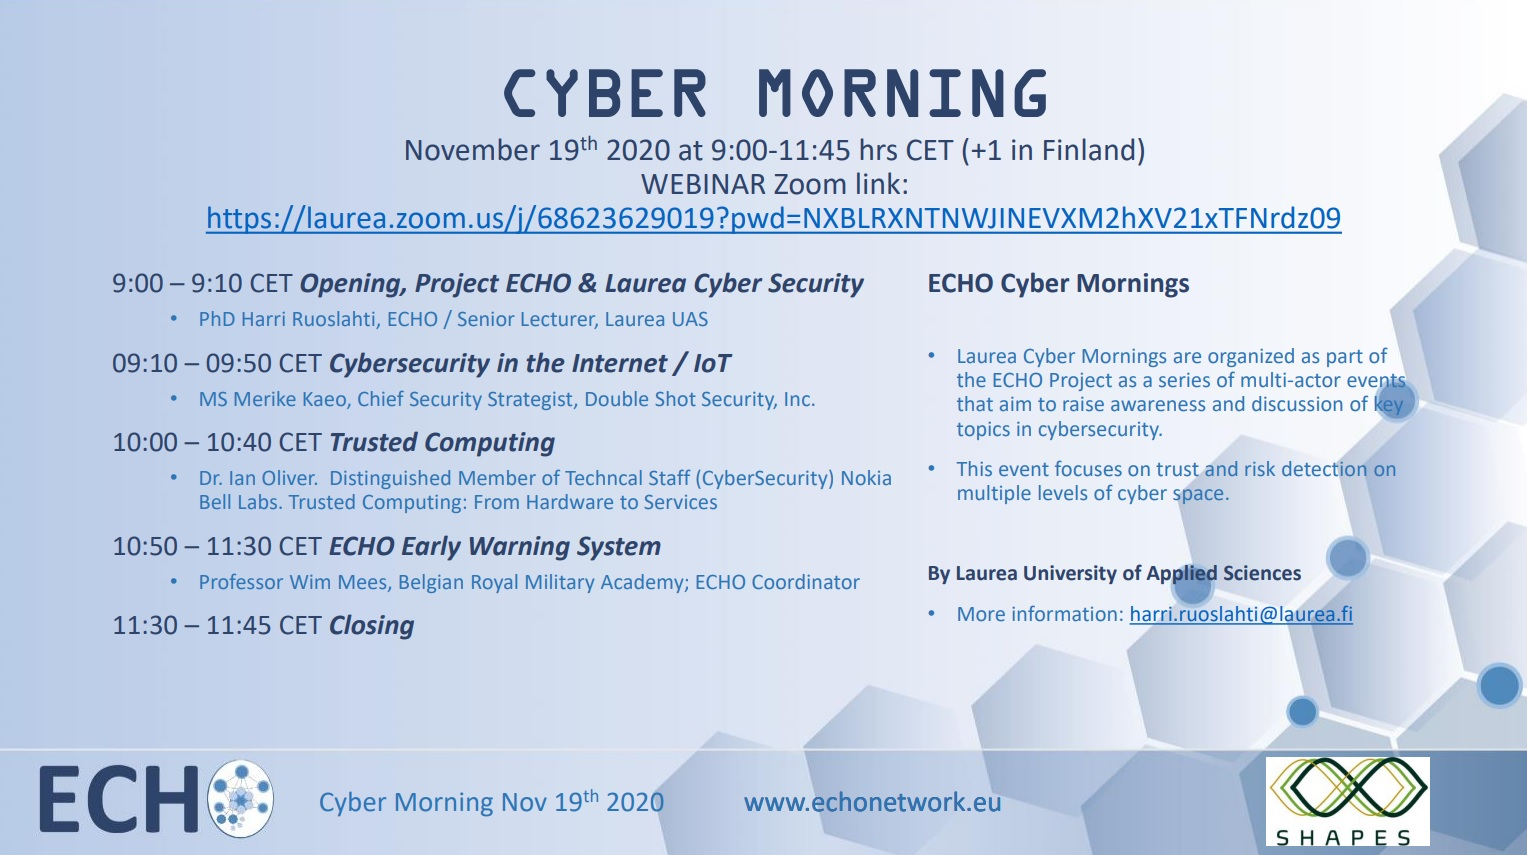 Layrea Cyber Morning Event, November 19, 2020 - Agenda and General Information Picture